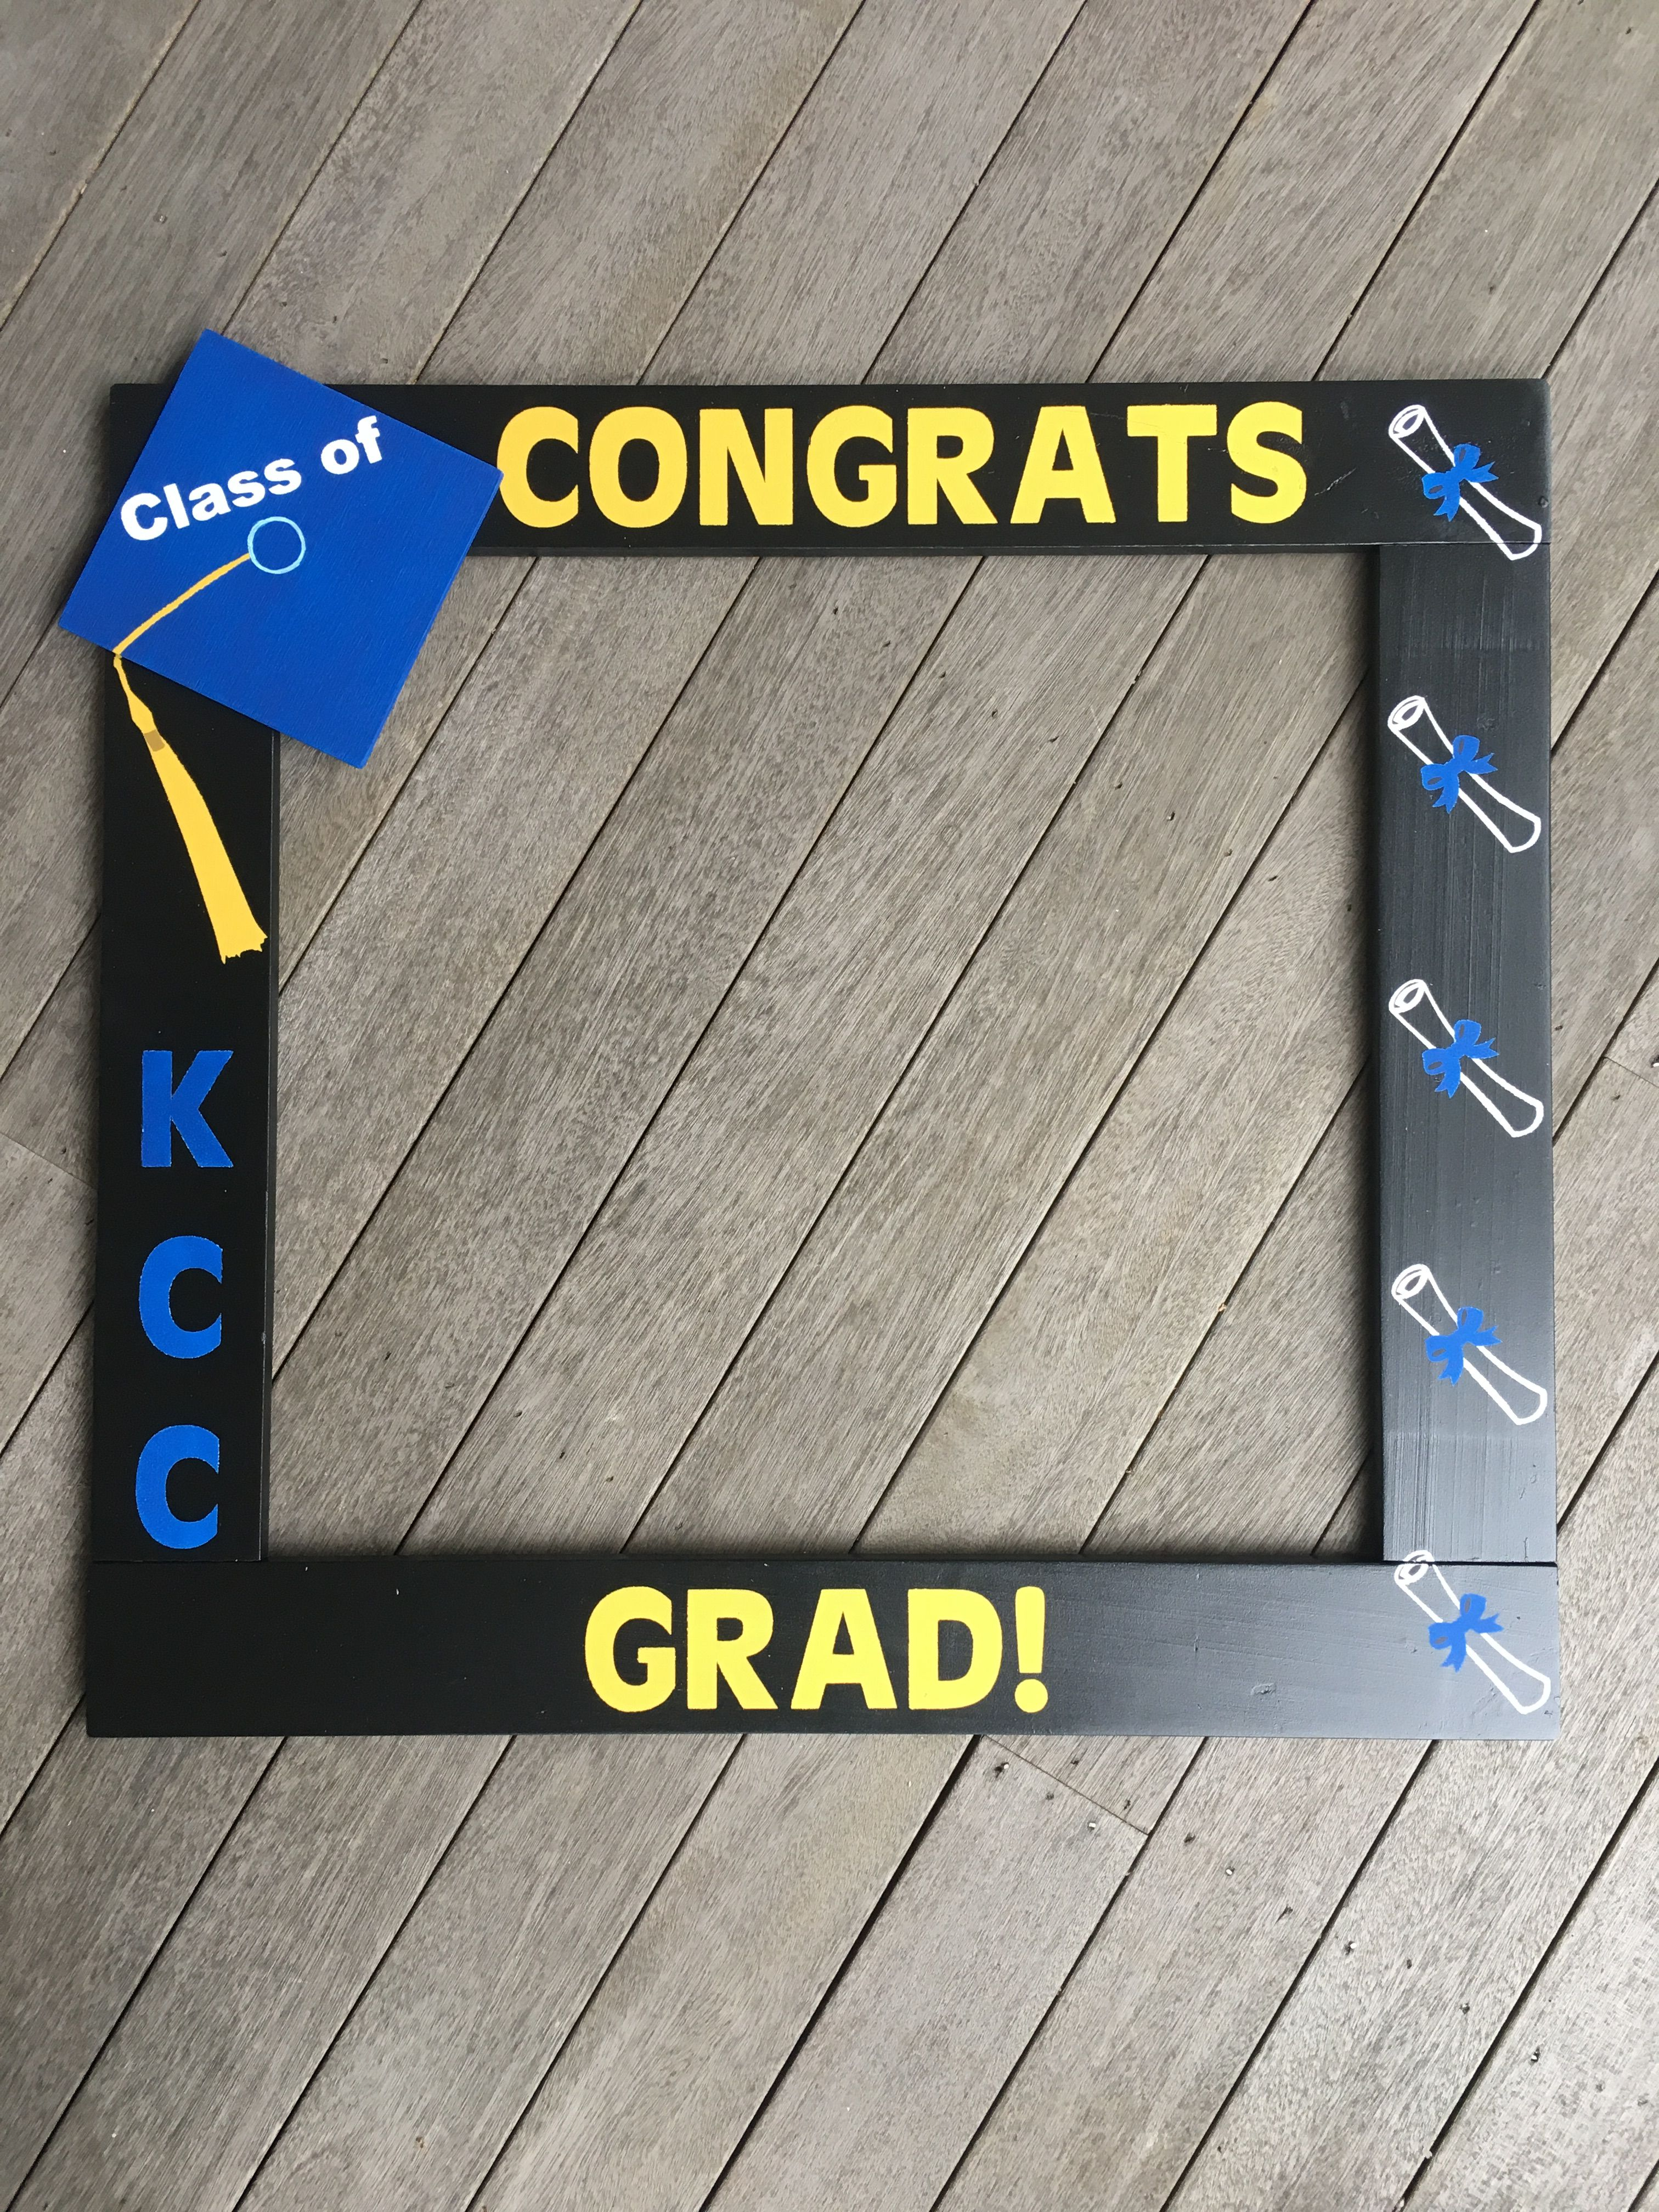 GRADUATION PHOTOBOOTH FRAME - Congrats Grad Photo Booth - Class of ...